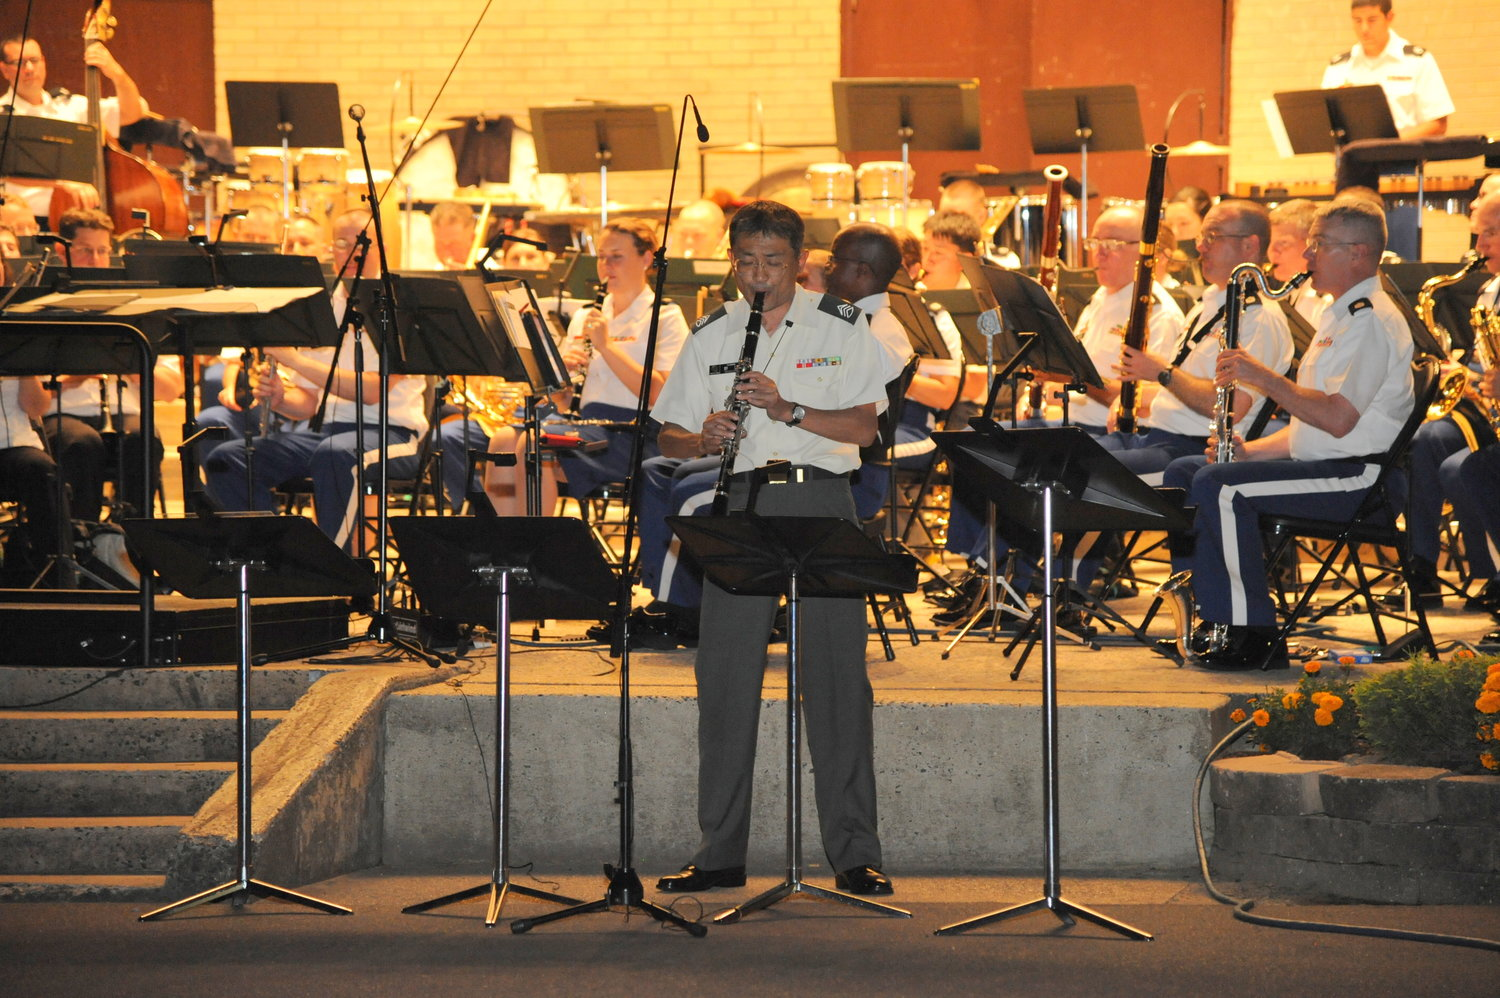 The West Point Concert Band, pictured in 2012, is returning to Valley Stream after a five-year absence.